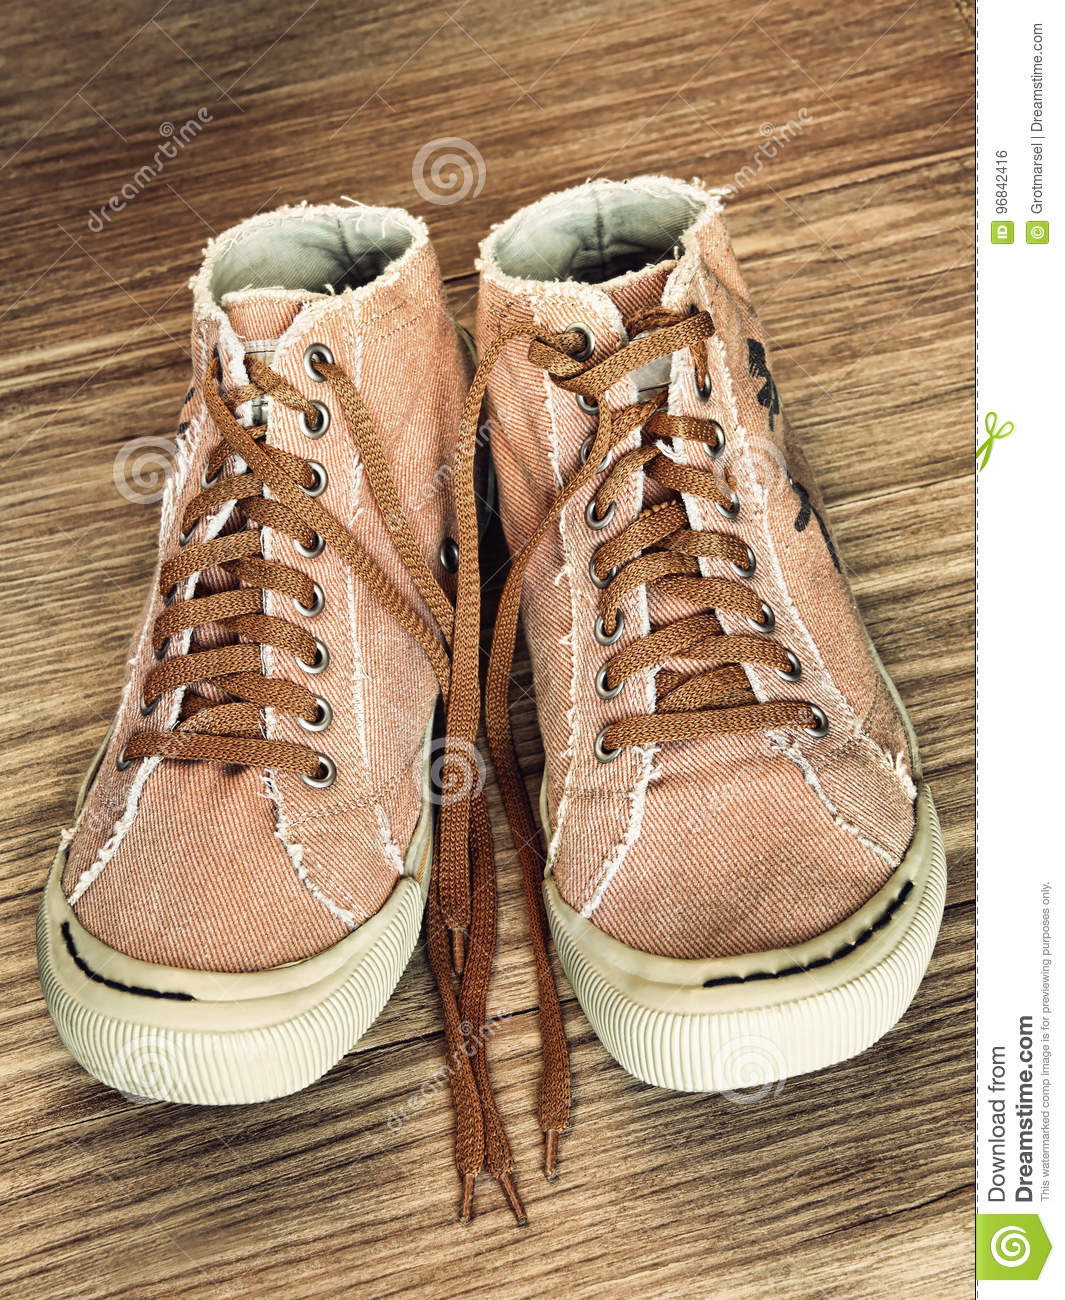 Pair of Trendy Gym shoe on wooden background taken closeup.